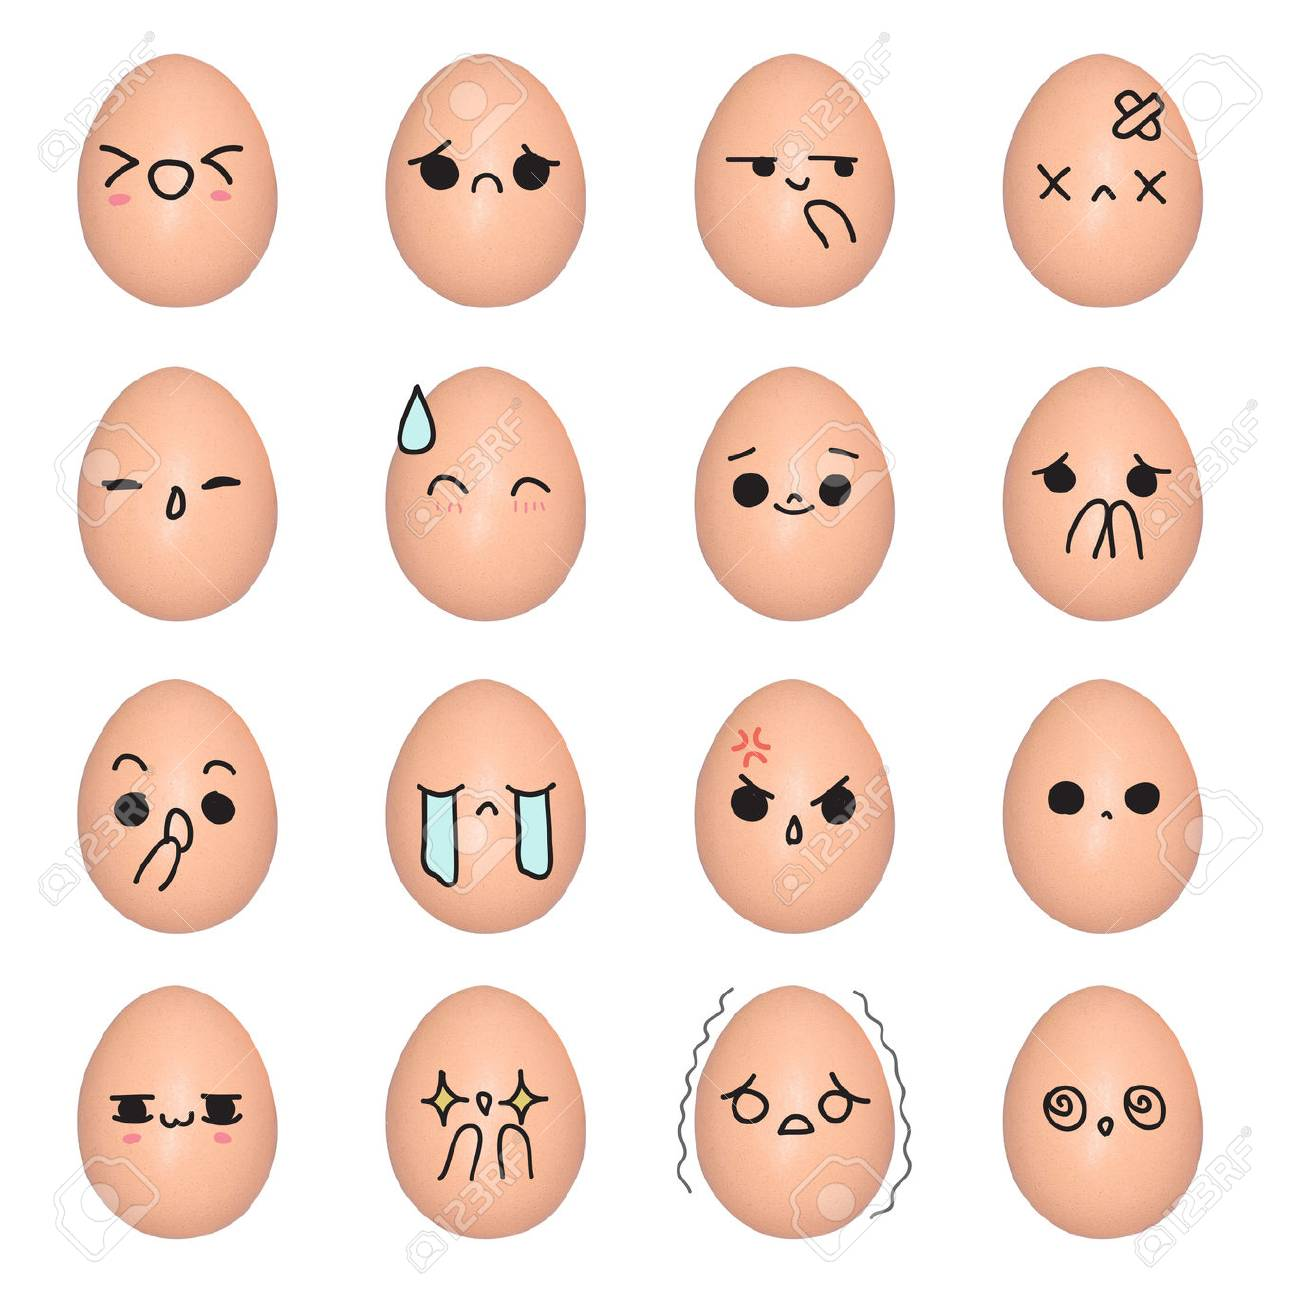 Egg Emoticon Face Action Cartoon Cute To Draw The Line Stock Photo